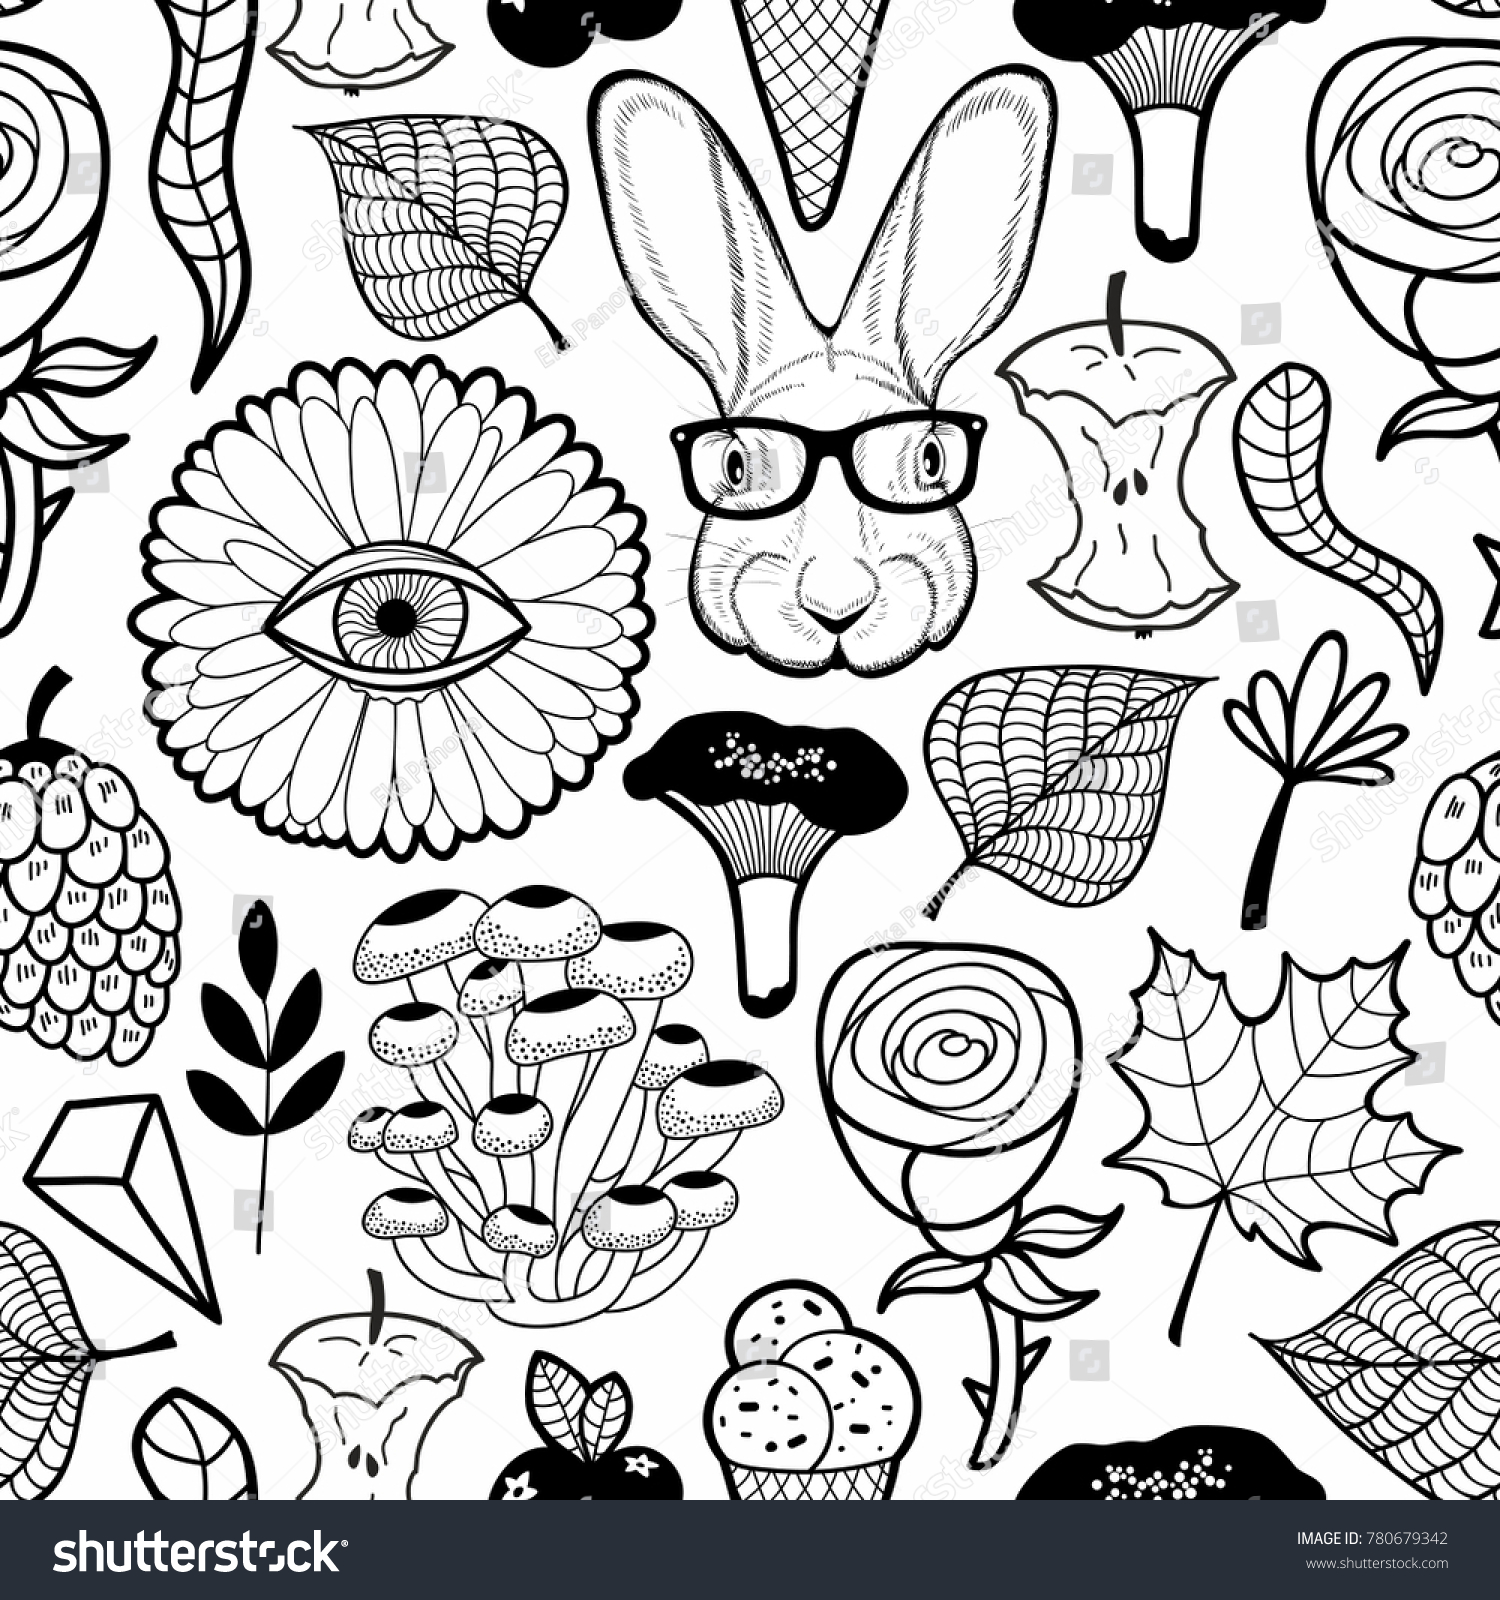 Black White Seamless Pattern Cool Hare Stock Vector 780679342 ...